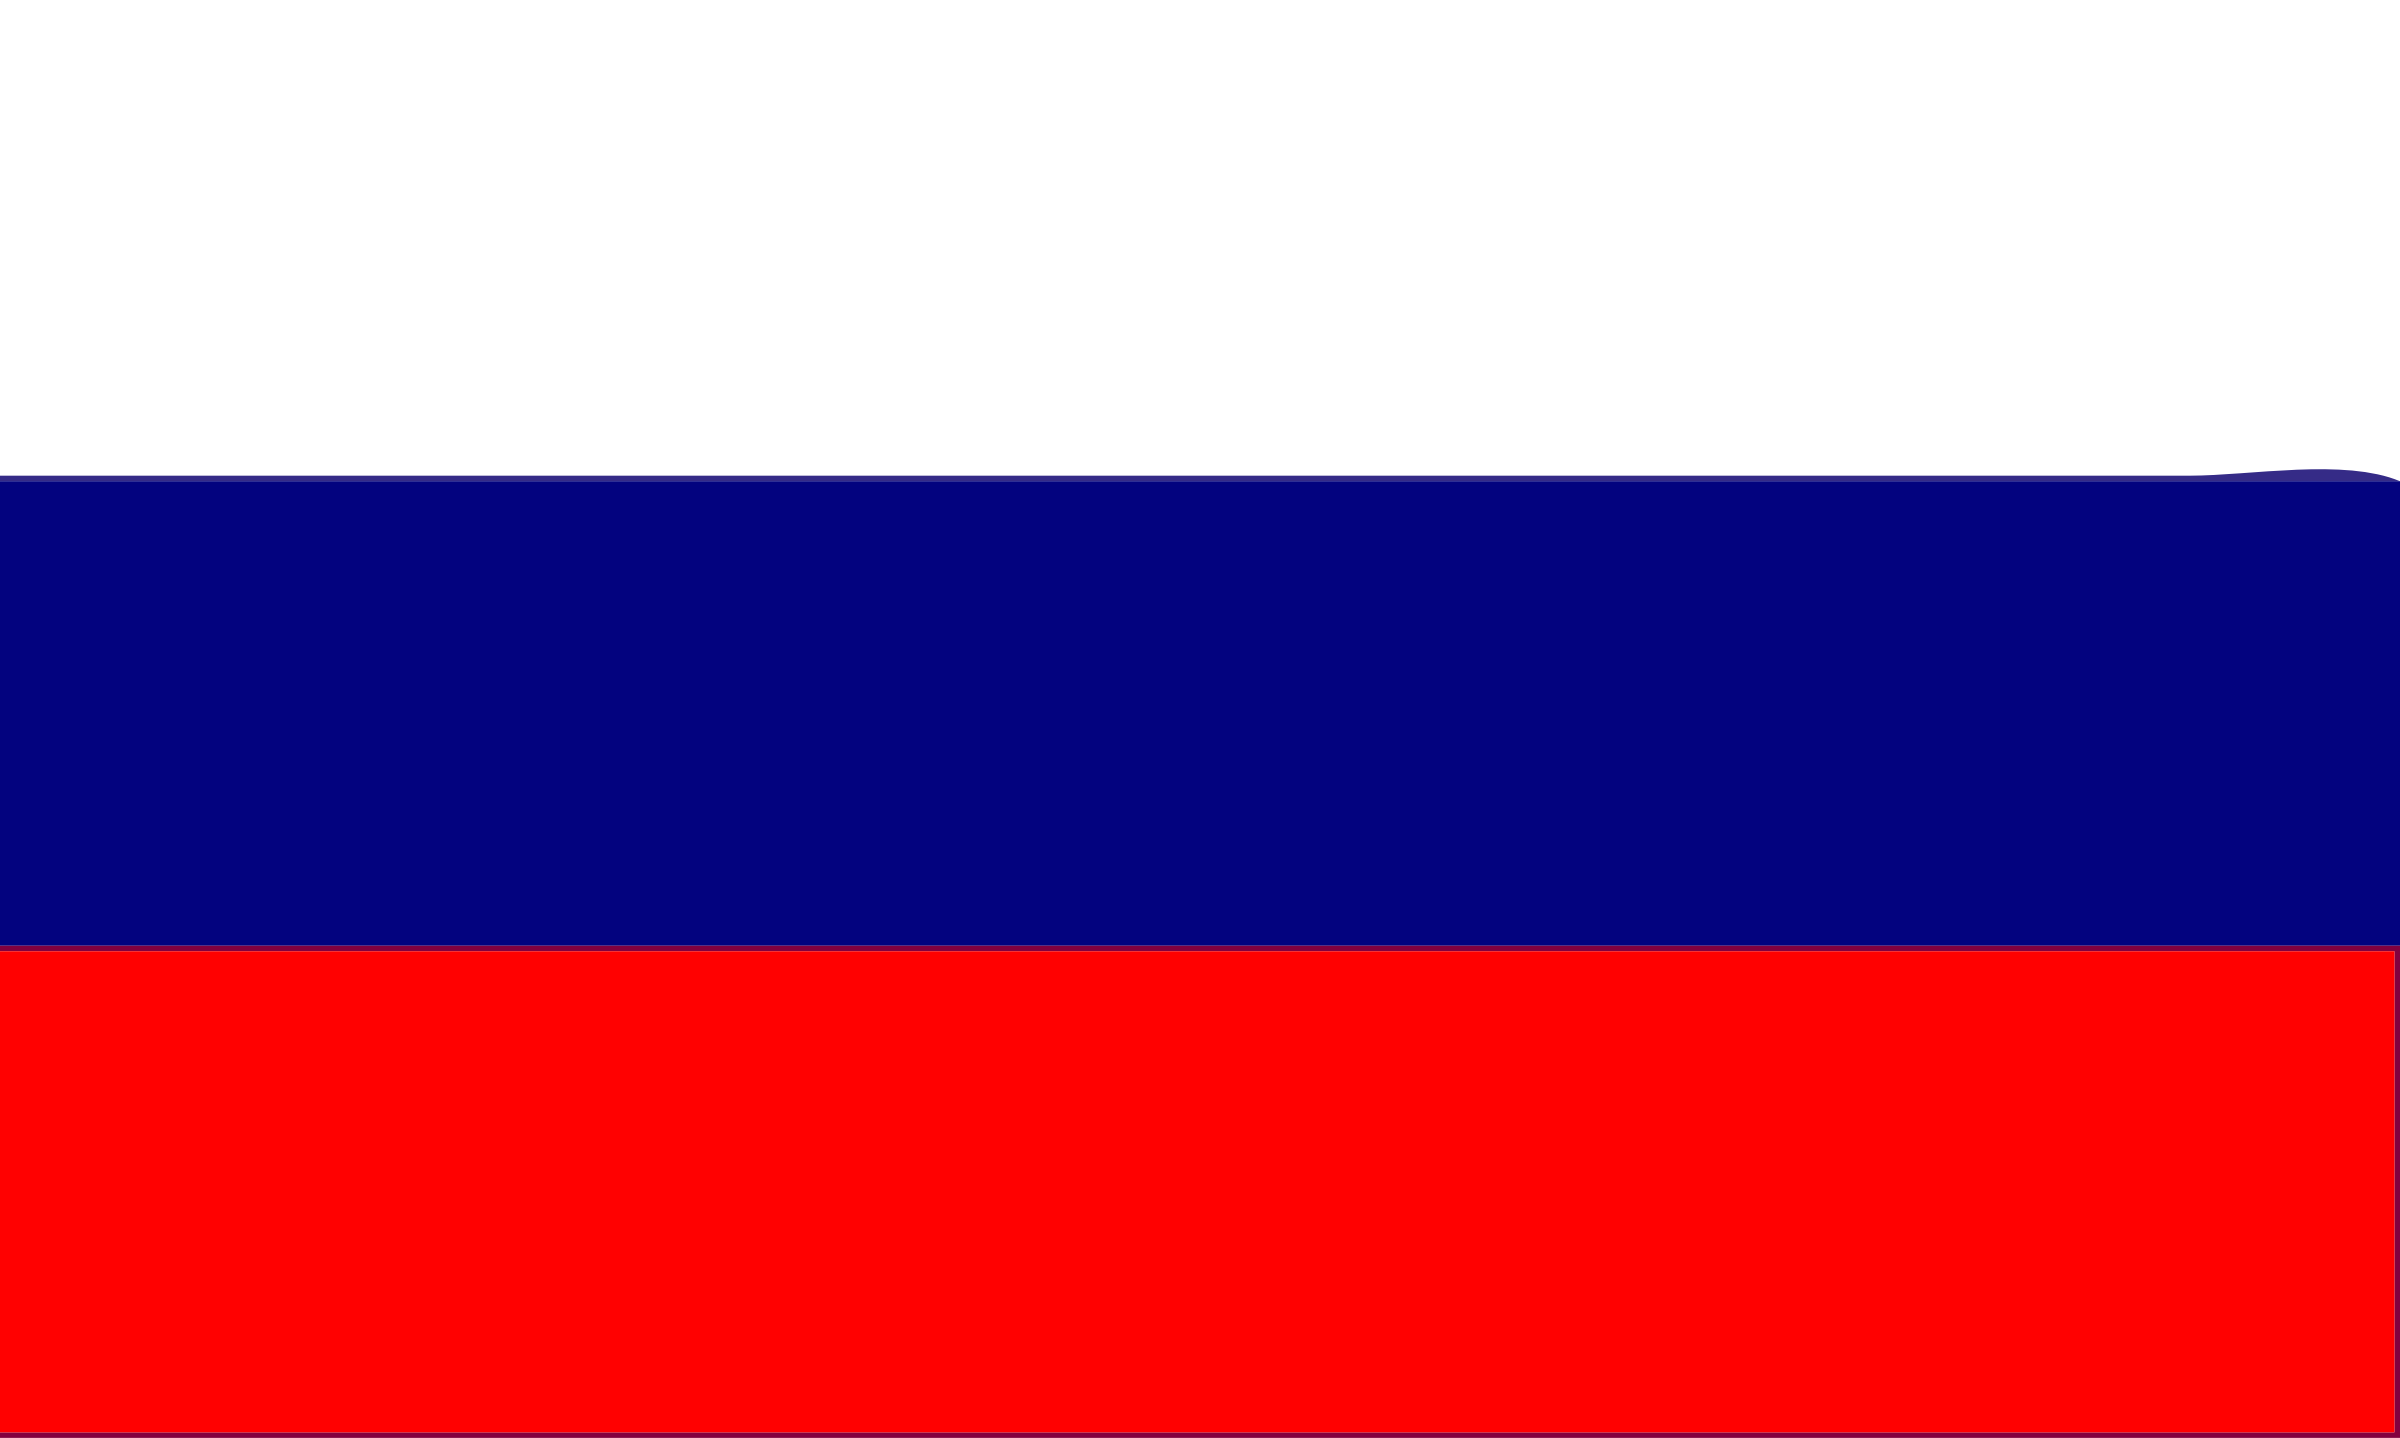 Flag of Russia by Joesph